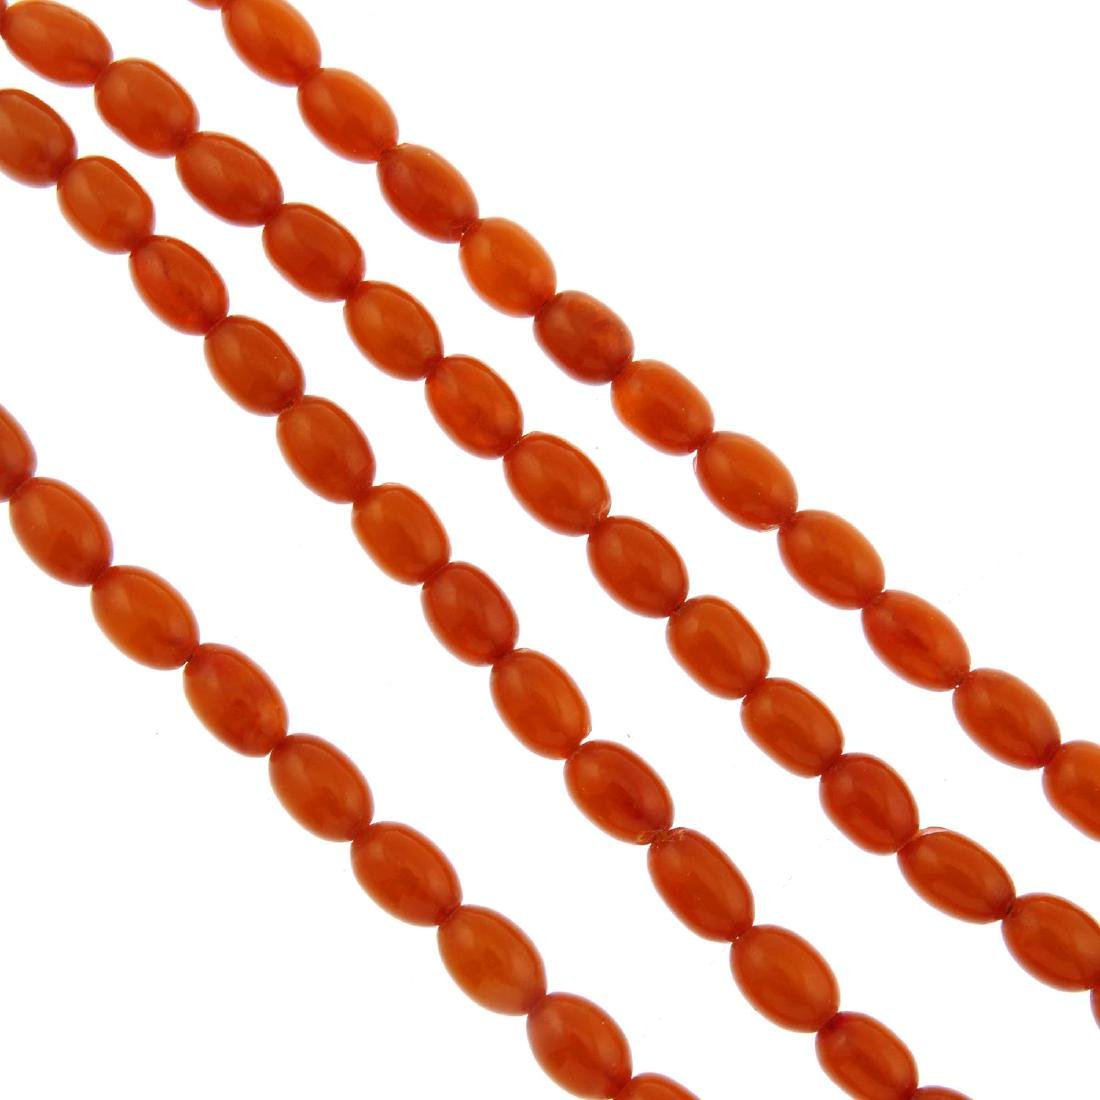 A natural amber bead necklace. Designed as oval beads